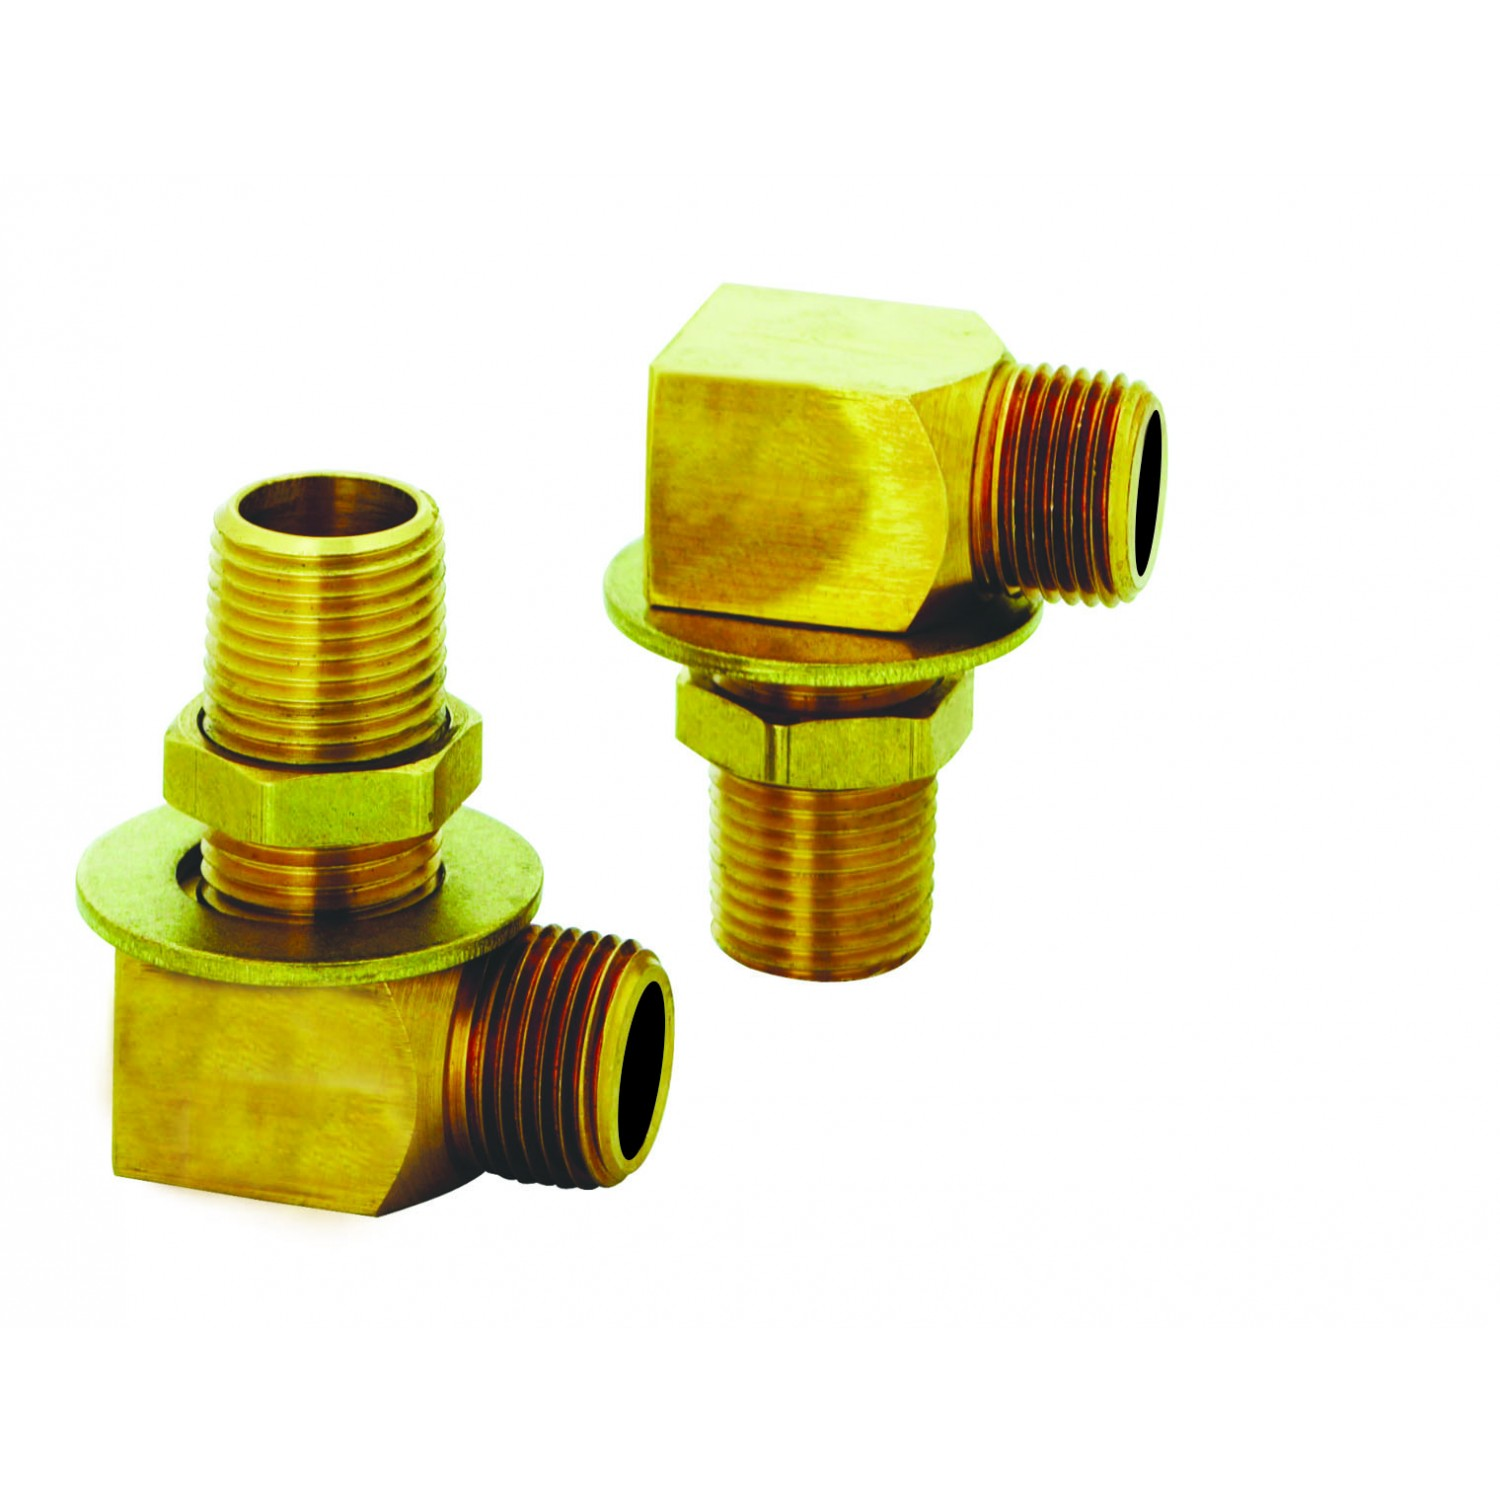 "T&S Brass Installation Kit 1/2"" NPT Nipple, Lock Nut & Washer, Short Elbow (1/2"" NPT Female/Male) B-0230-K"